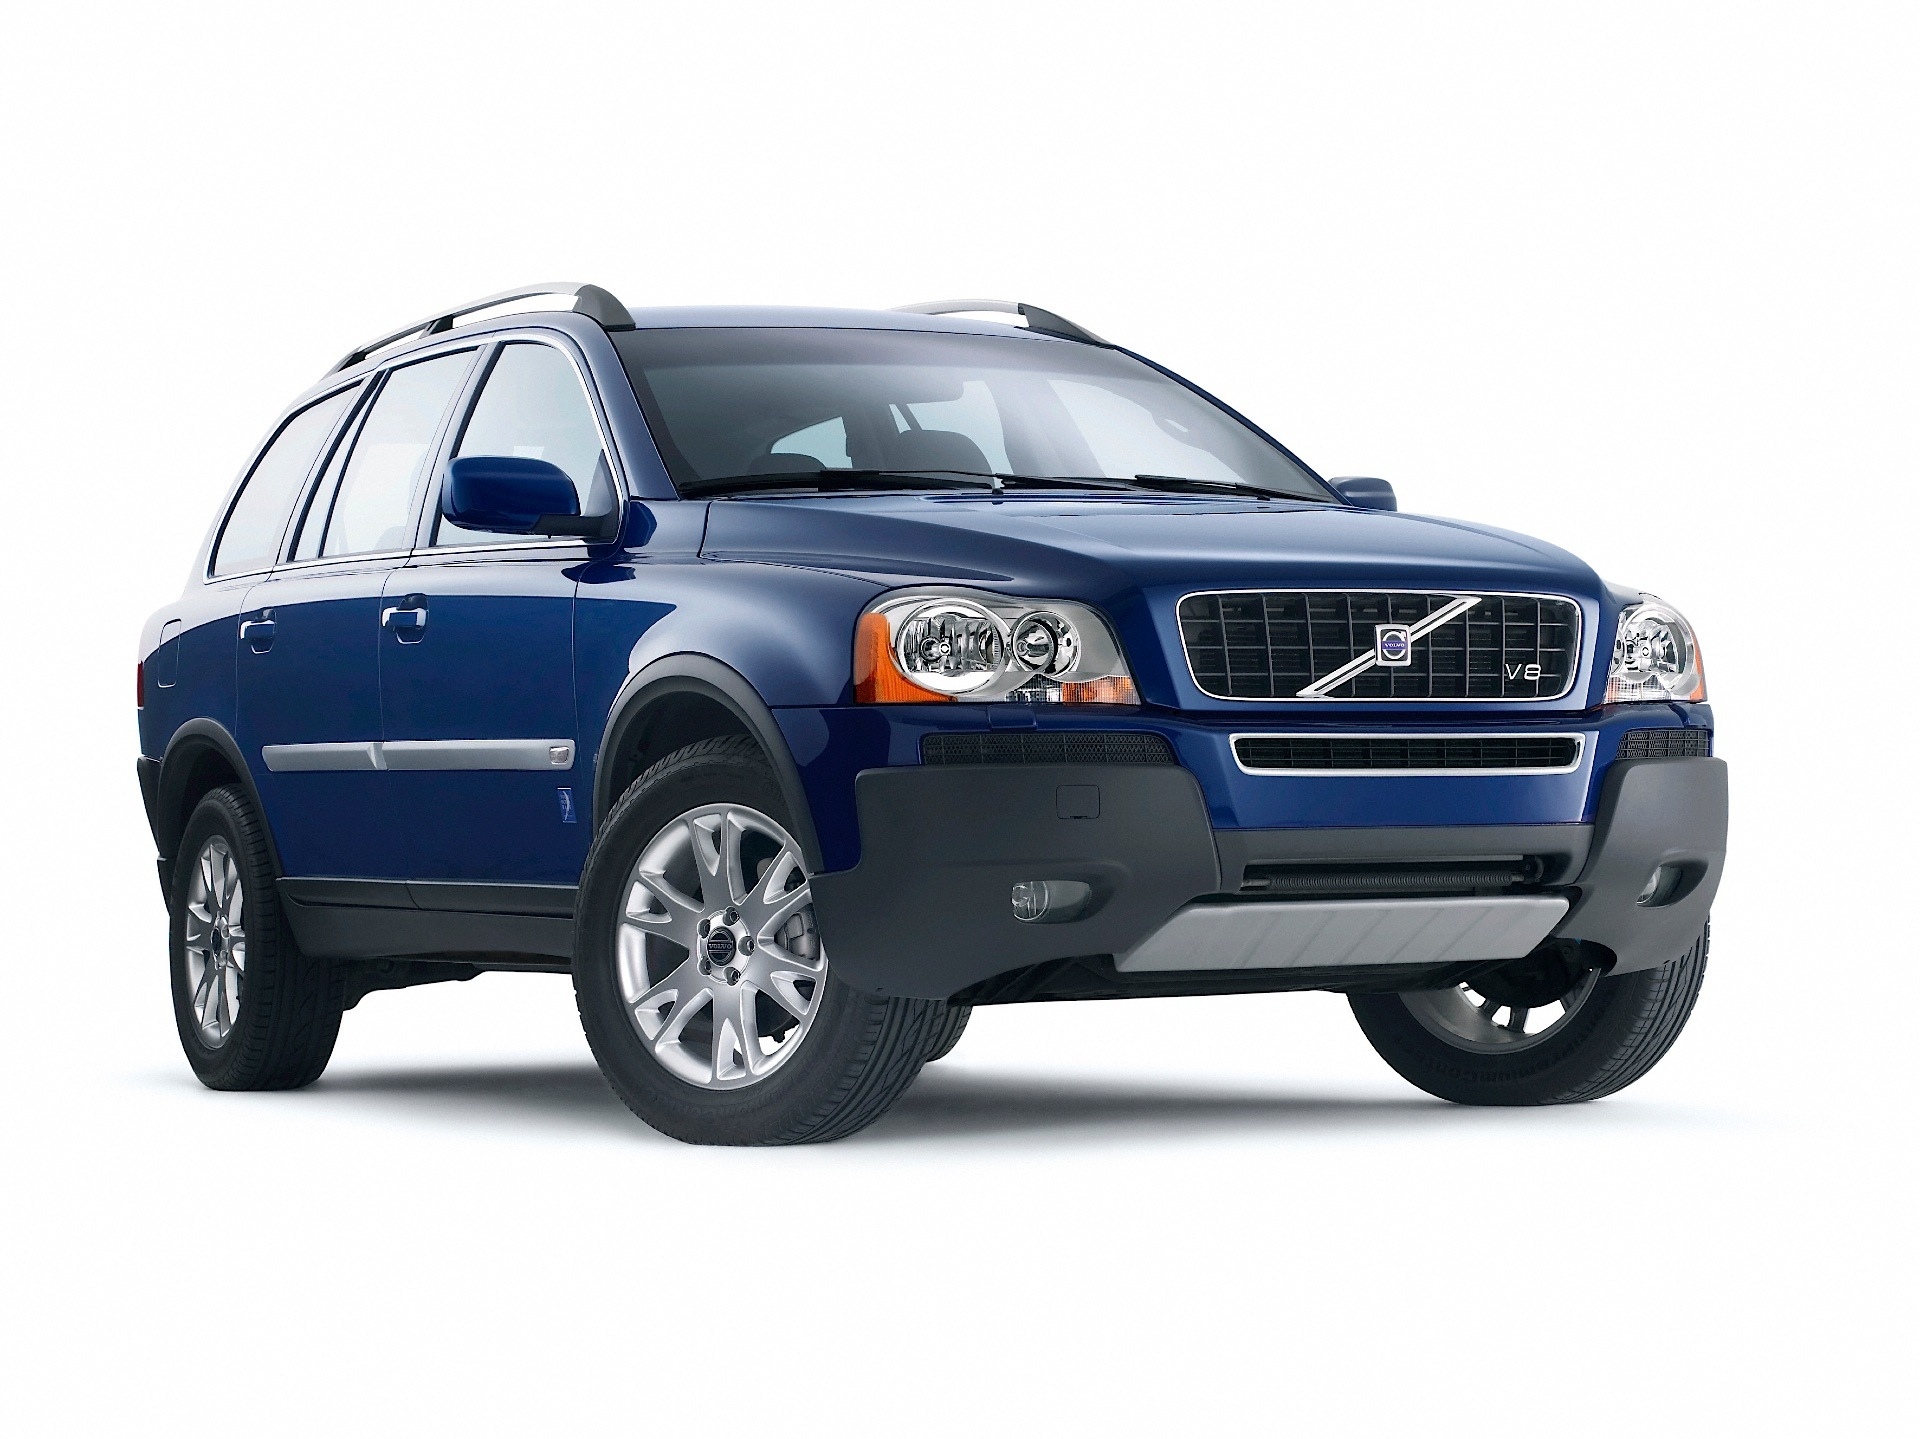 volvo xc90 specs photos 2002 2003 2004 2005 2006 autoevolution rh autoevolution com 2005 volvo xc90 manual transfer box faults 2005 volvo xc90 manual pdf